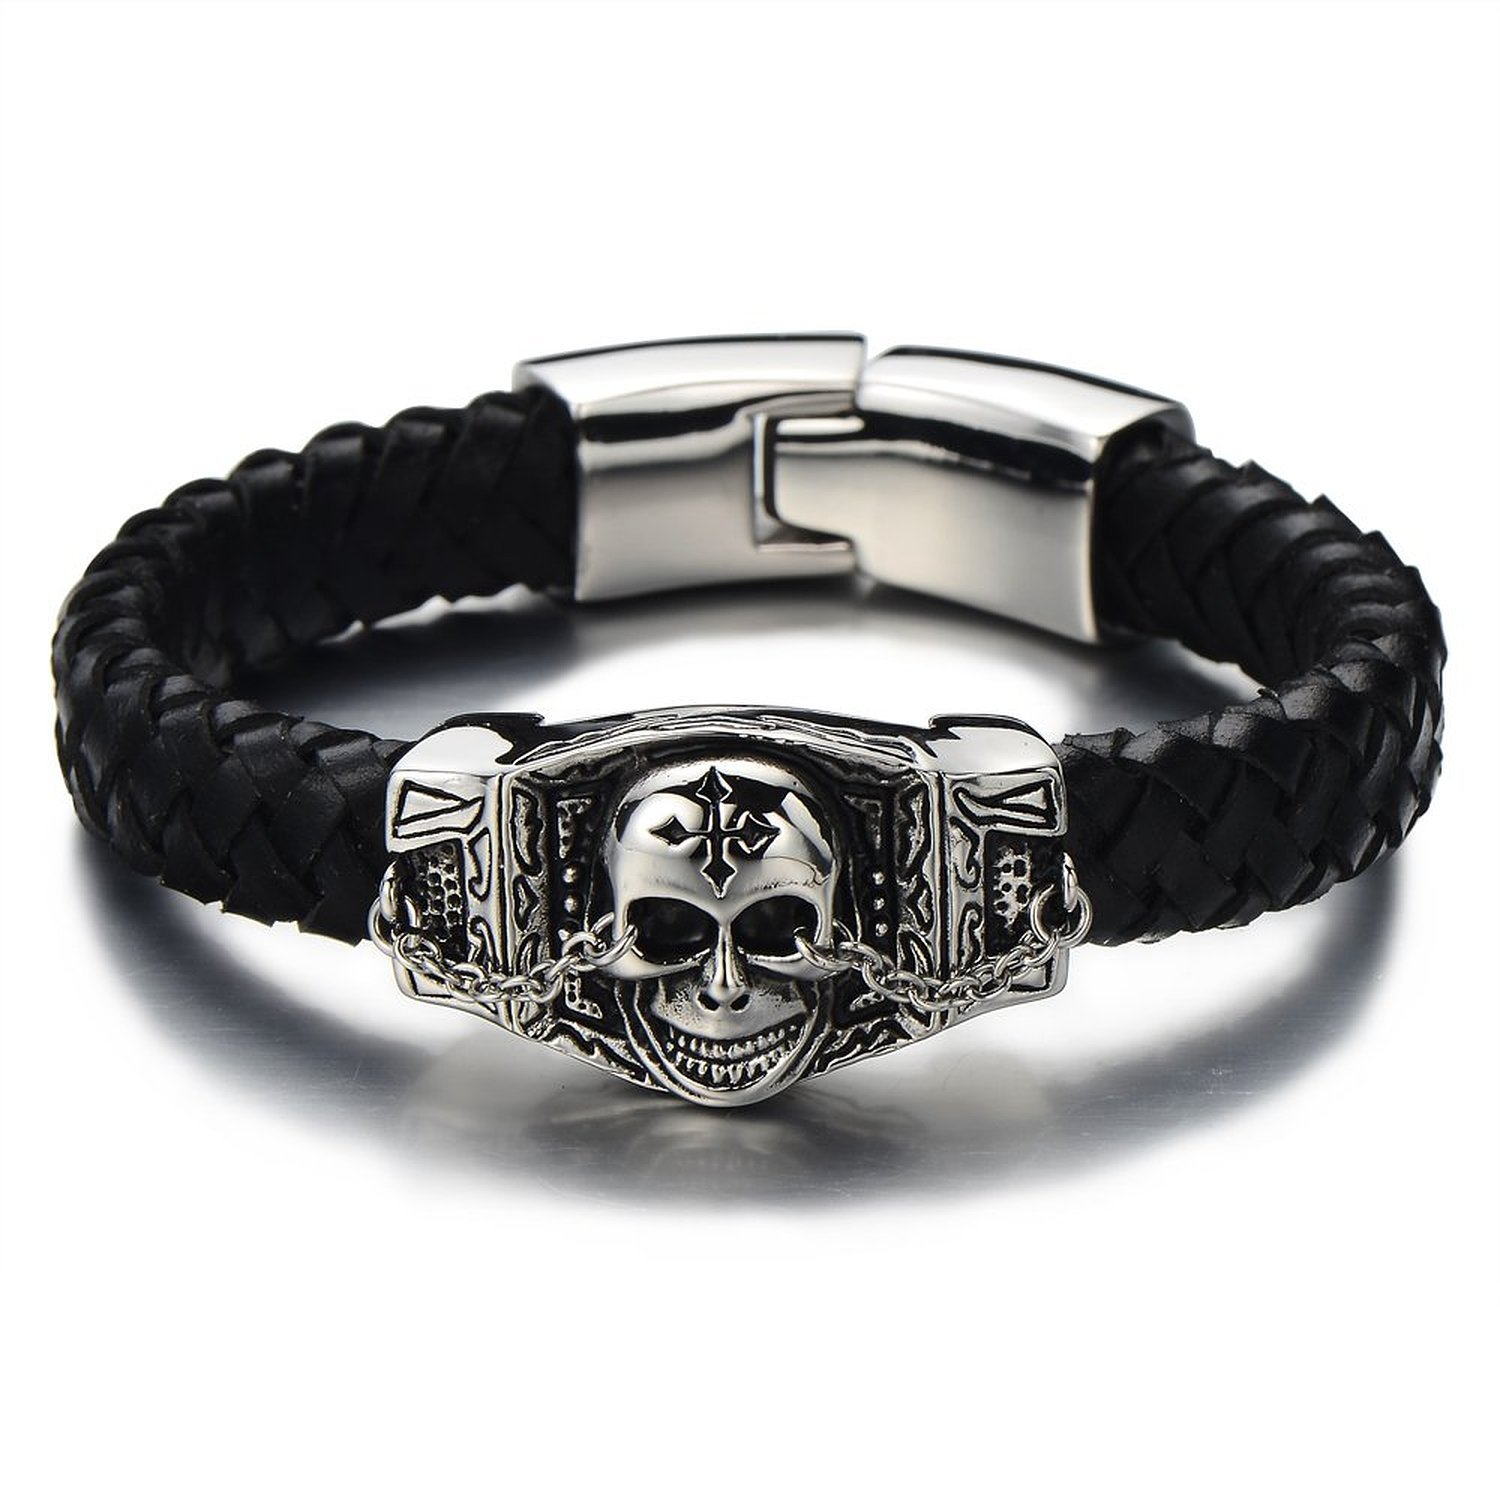 Gothic Style Mens Skull Bracelet Genuine Braided Leather Bracelet Stainless Steel Silver Black Polished COOLSTEELANDBEYOND MB-161A-CA